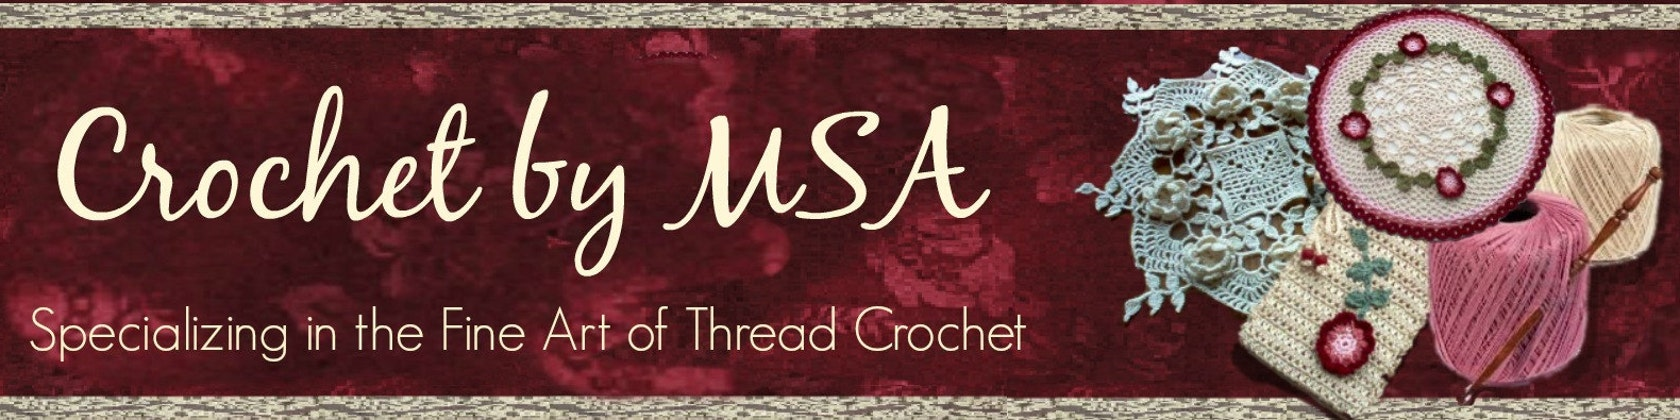 Crochet by MSA Fine Art Thread Crochet Creations